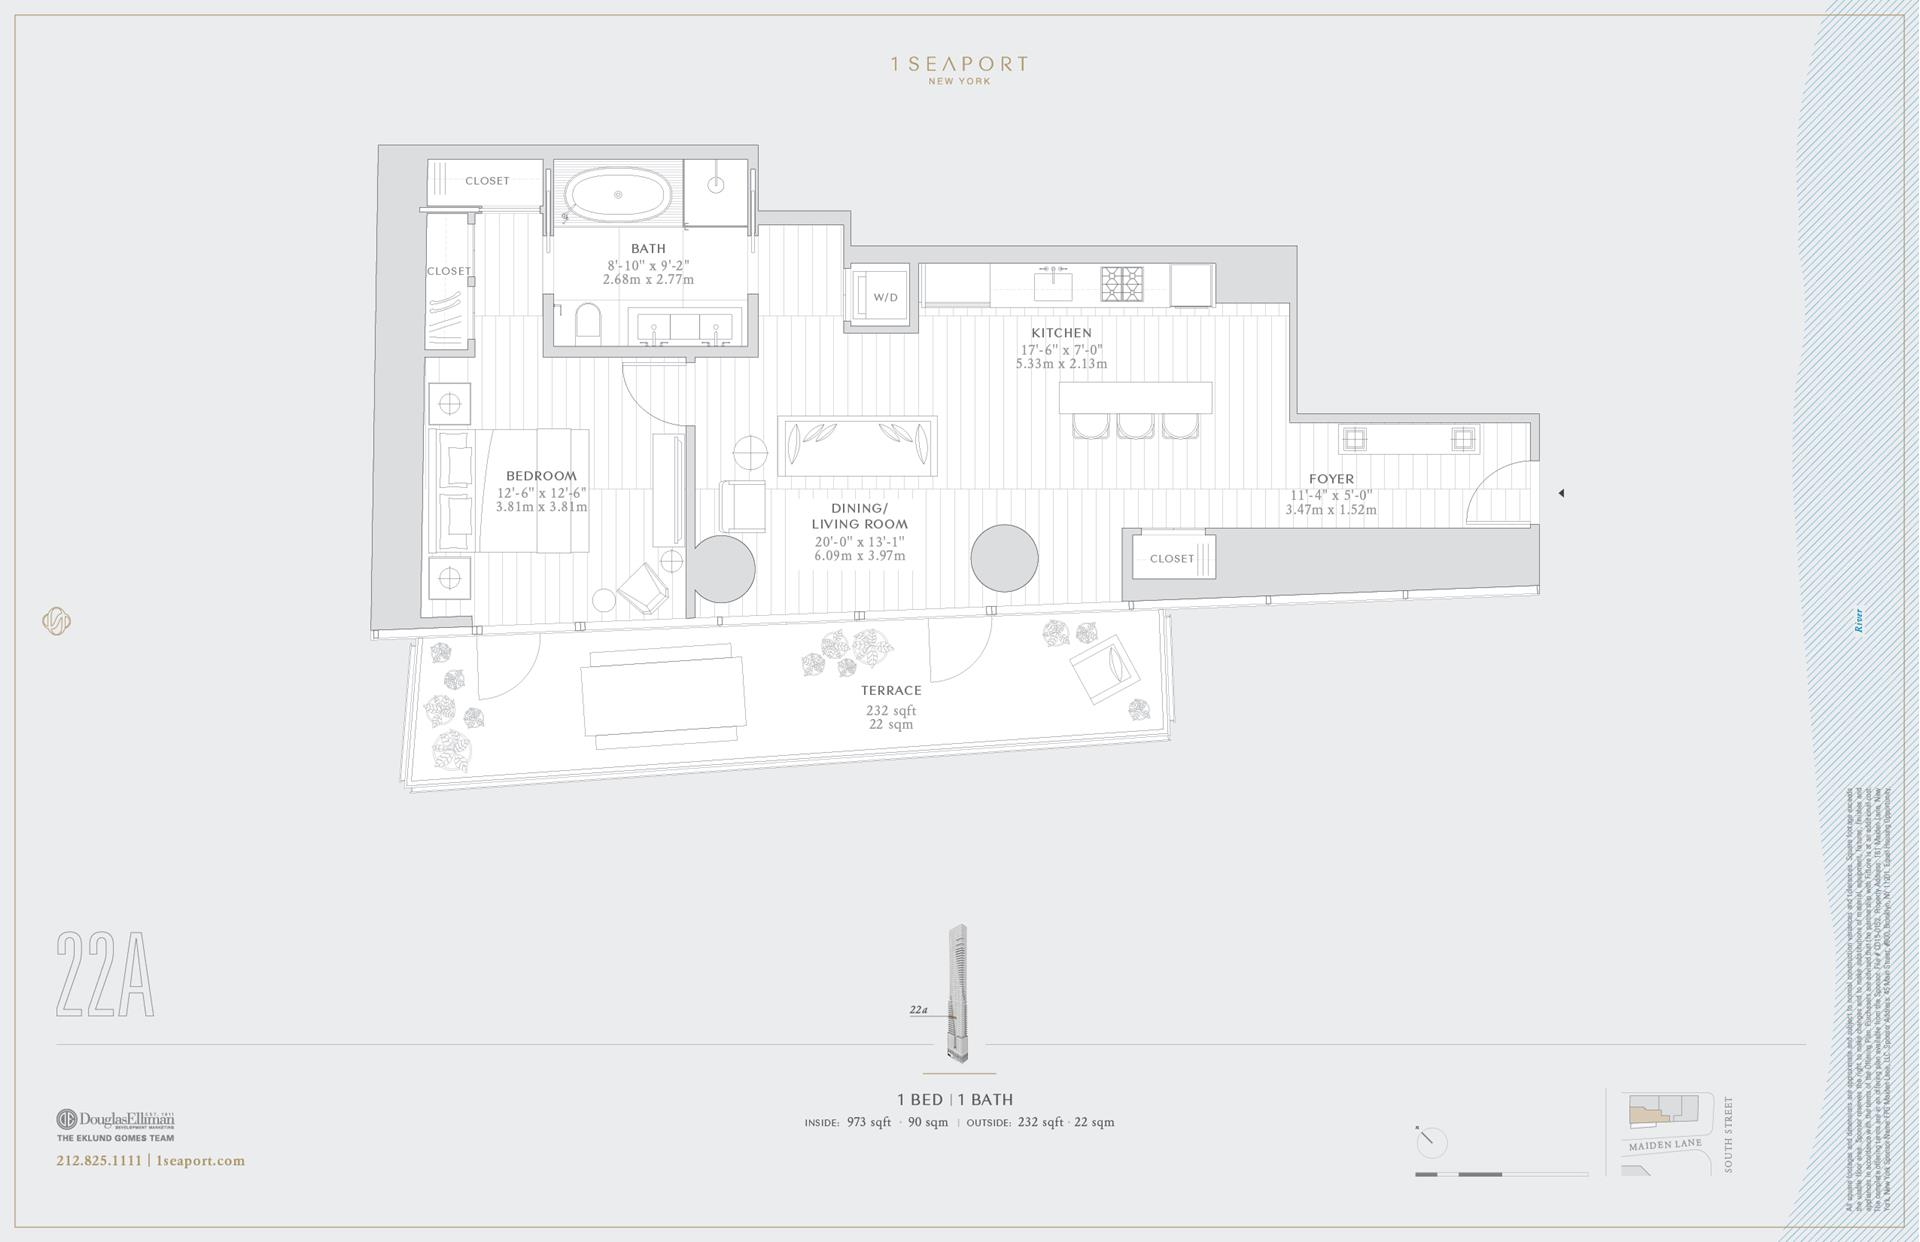 Floor plan of 1 Seaport, 161 Maiden Ln, 22A - Financial District, New York